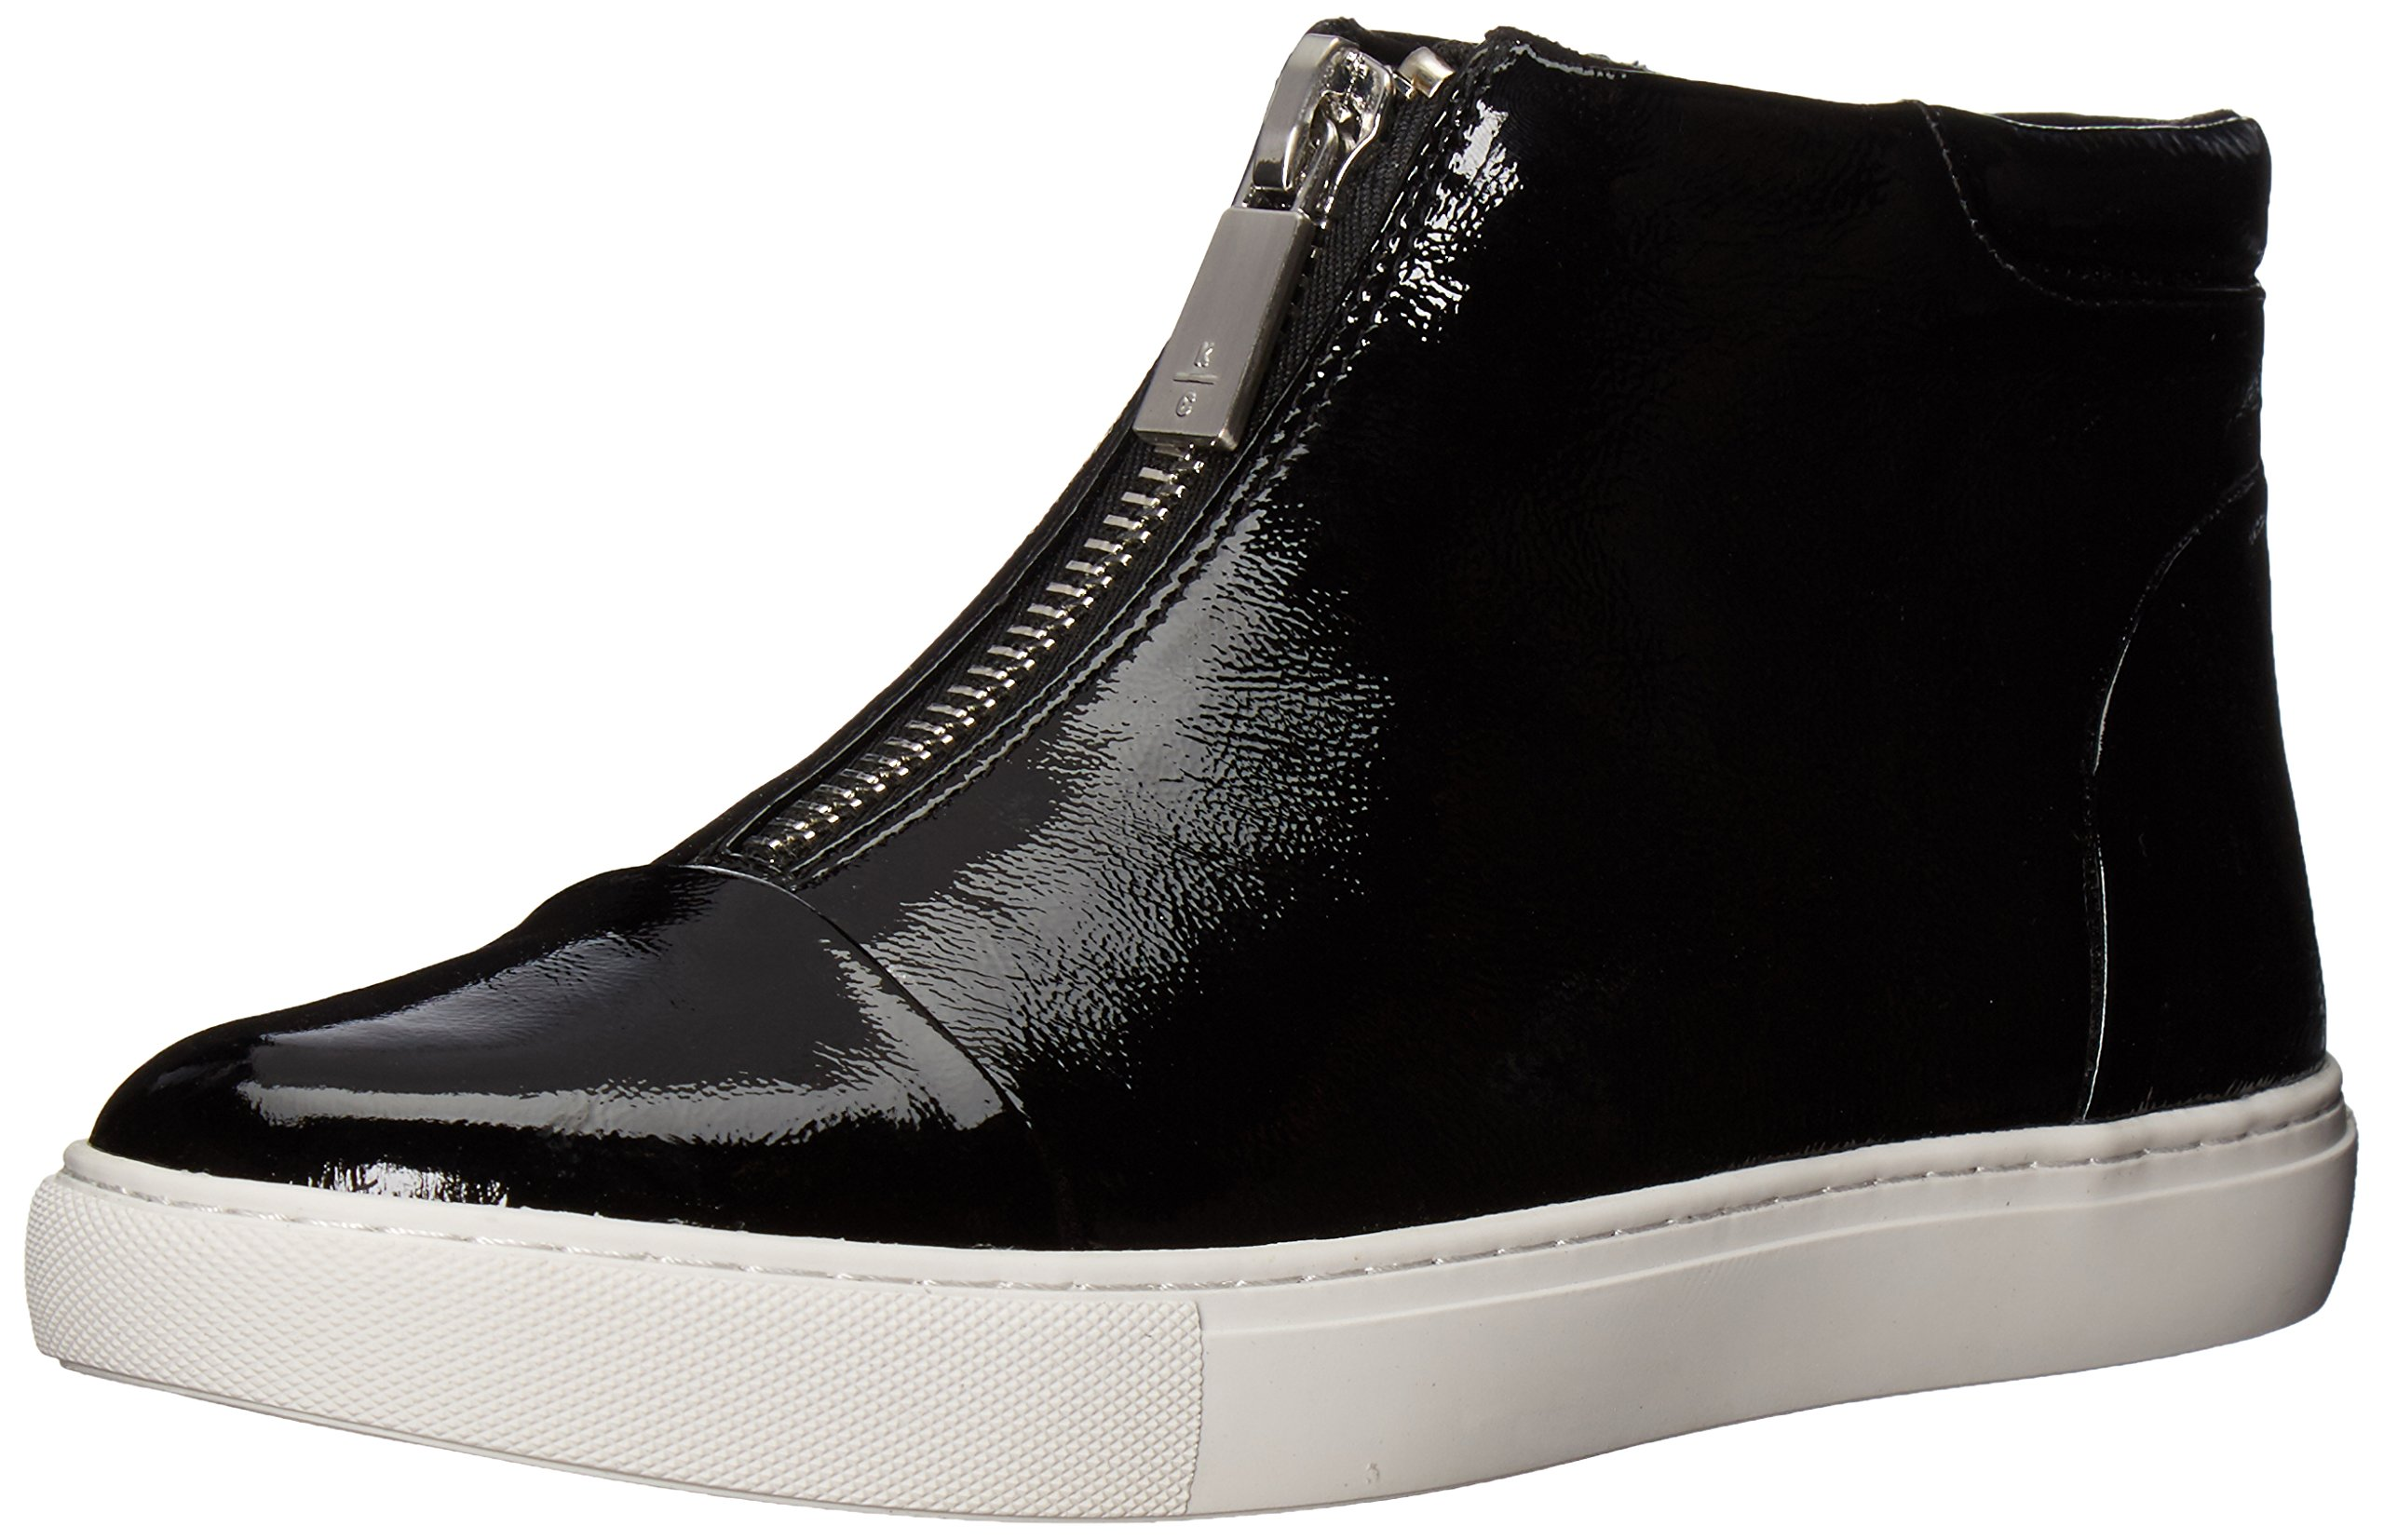 Kenneth Cole New York Women's Kayla High Top Front Zip Patent Fashion Sneaker, Black, 7 M US